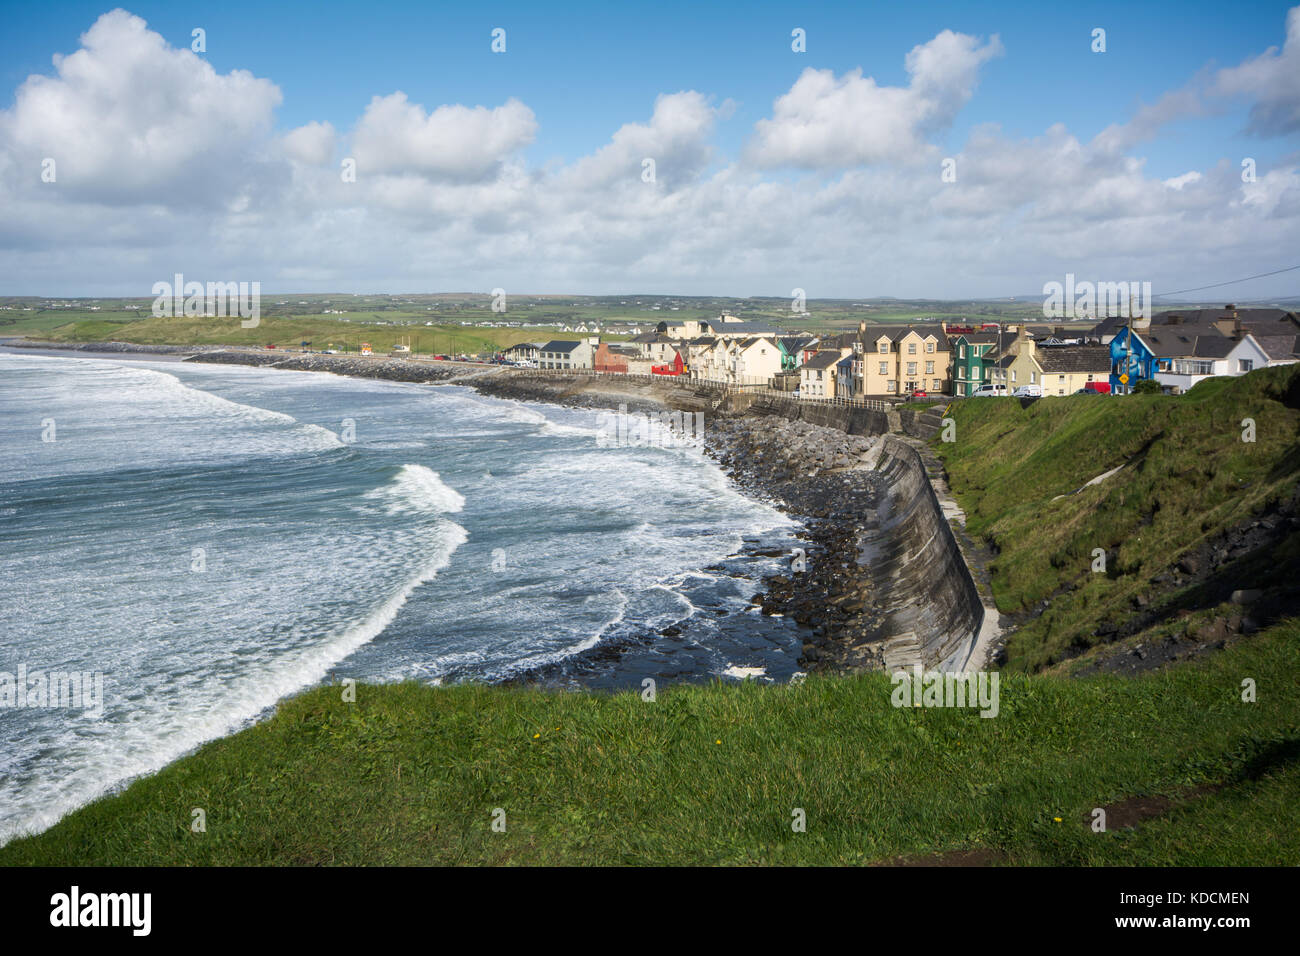 Coastline at the town of Lahinch in county Clare on the Atlantic west coast of Ireland - Stock Image